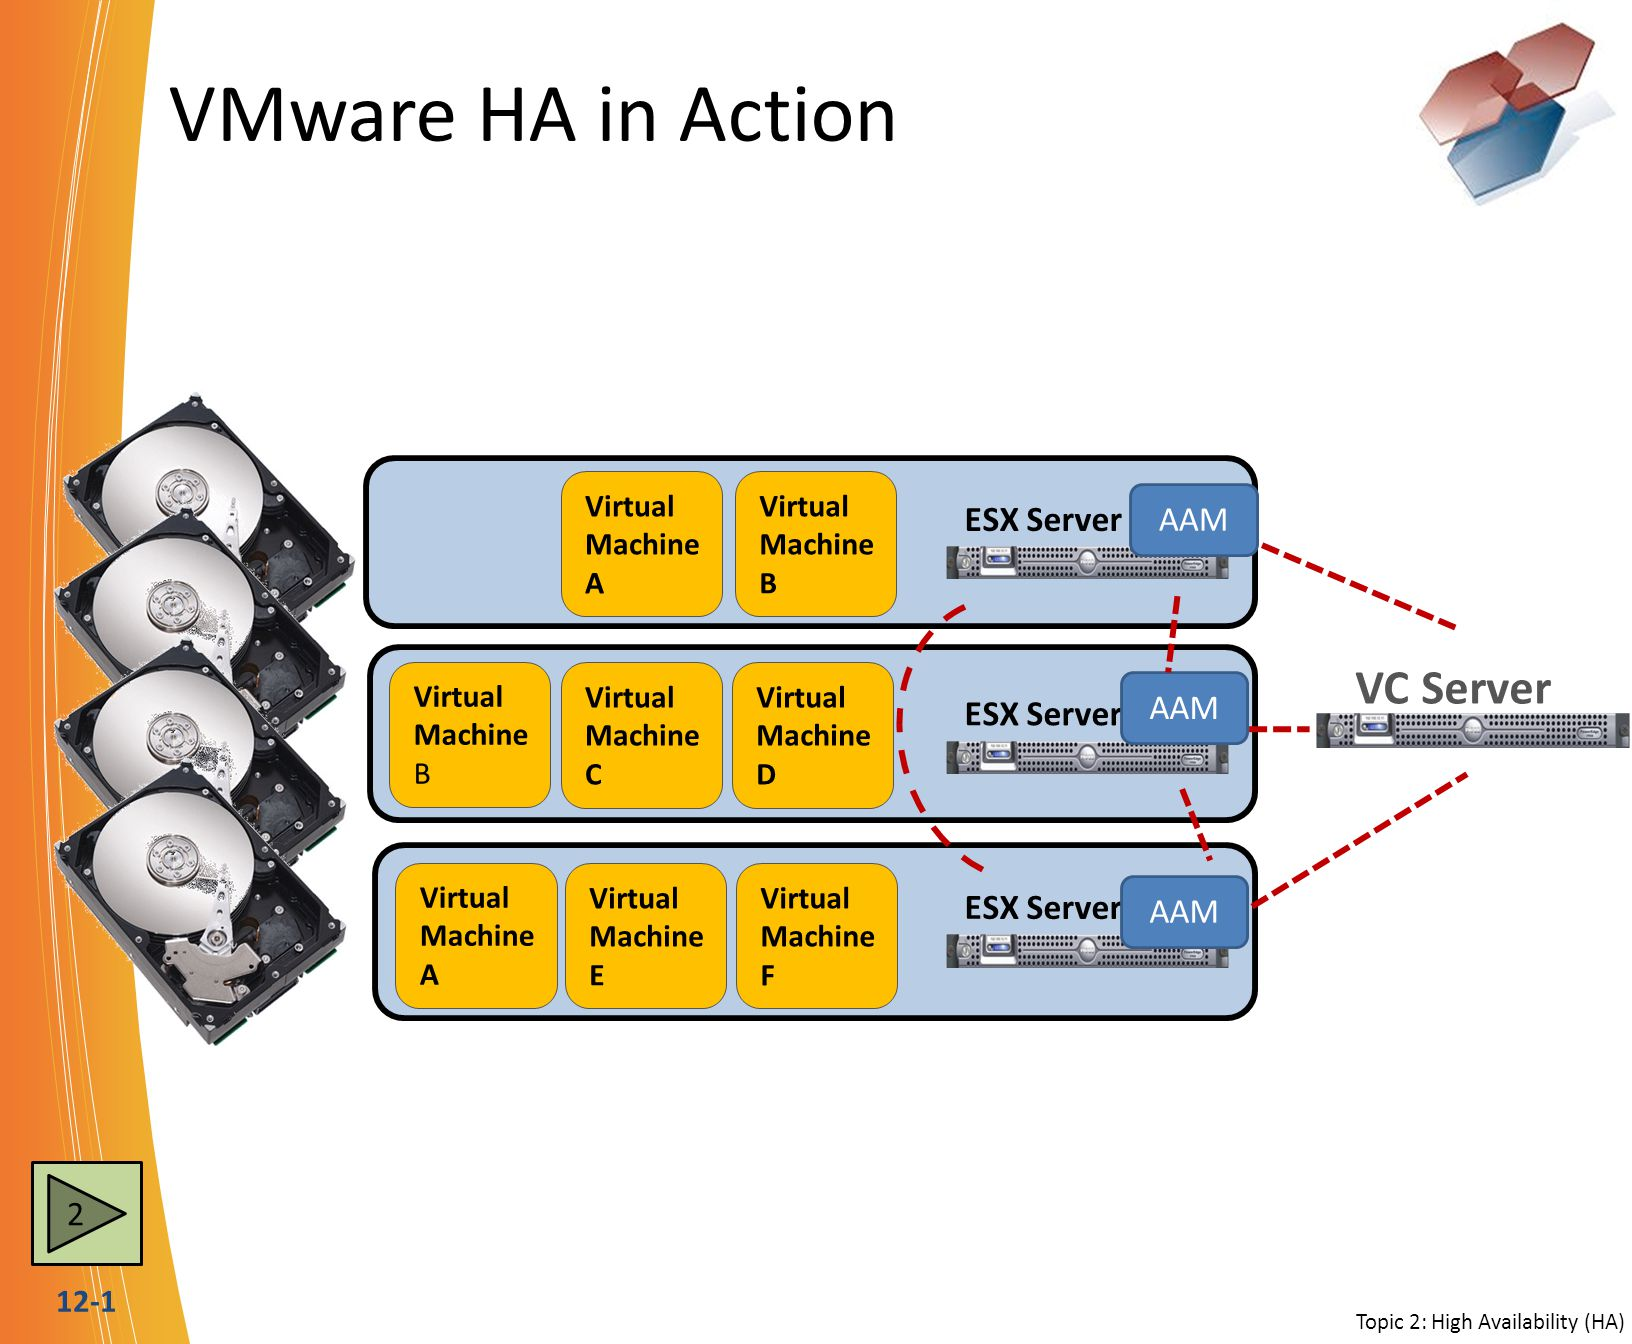 12-1 VMware HA in Action VC Server ESX Server Virtual Machine B Virtual Machine C ESX Server Virtual Machine D Virtual Machine A Virtual Machine E Virtual Machine F ESX Server Virtual Machine B Virtual Machine A Topic 2: High Availability (HA) AAM 2